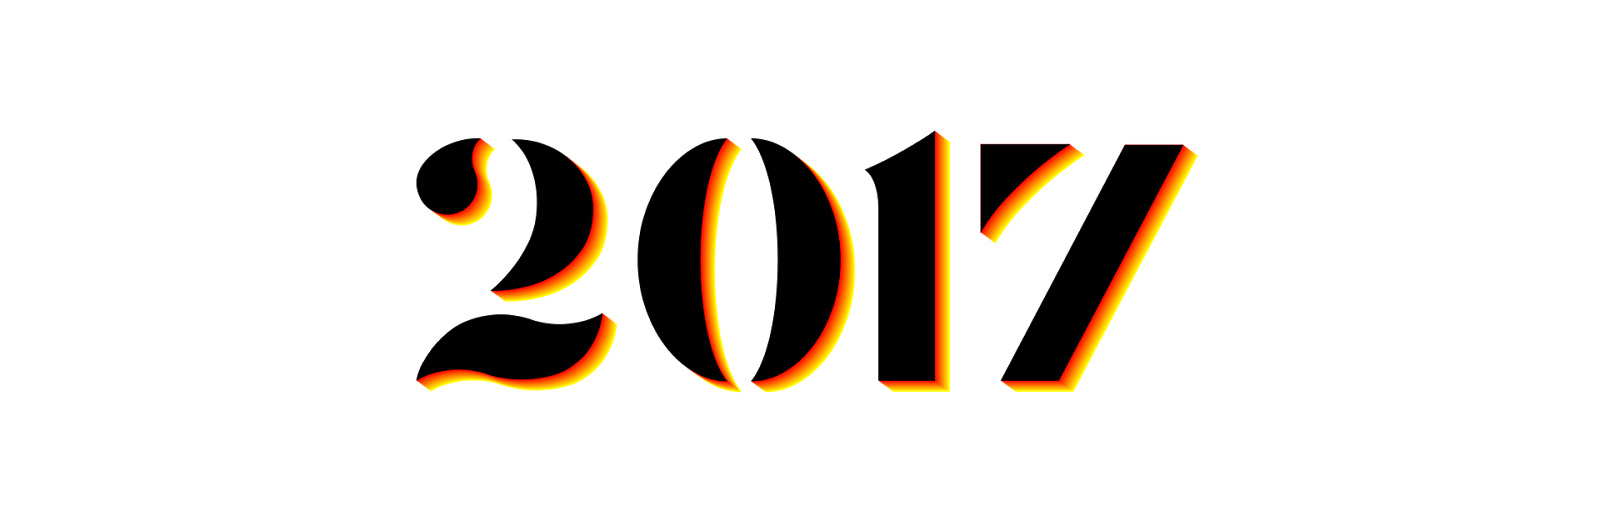 Happy New Year 2017 PNG Images Pictures